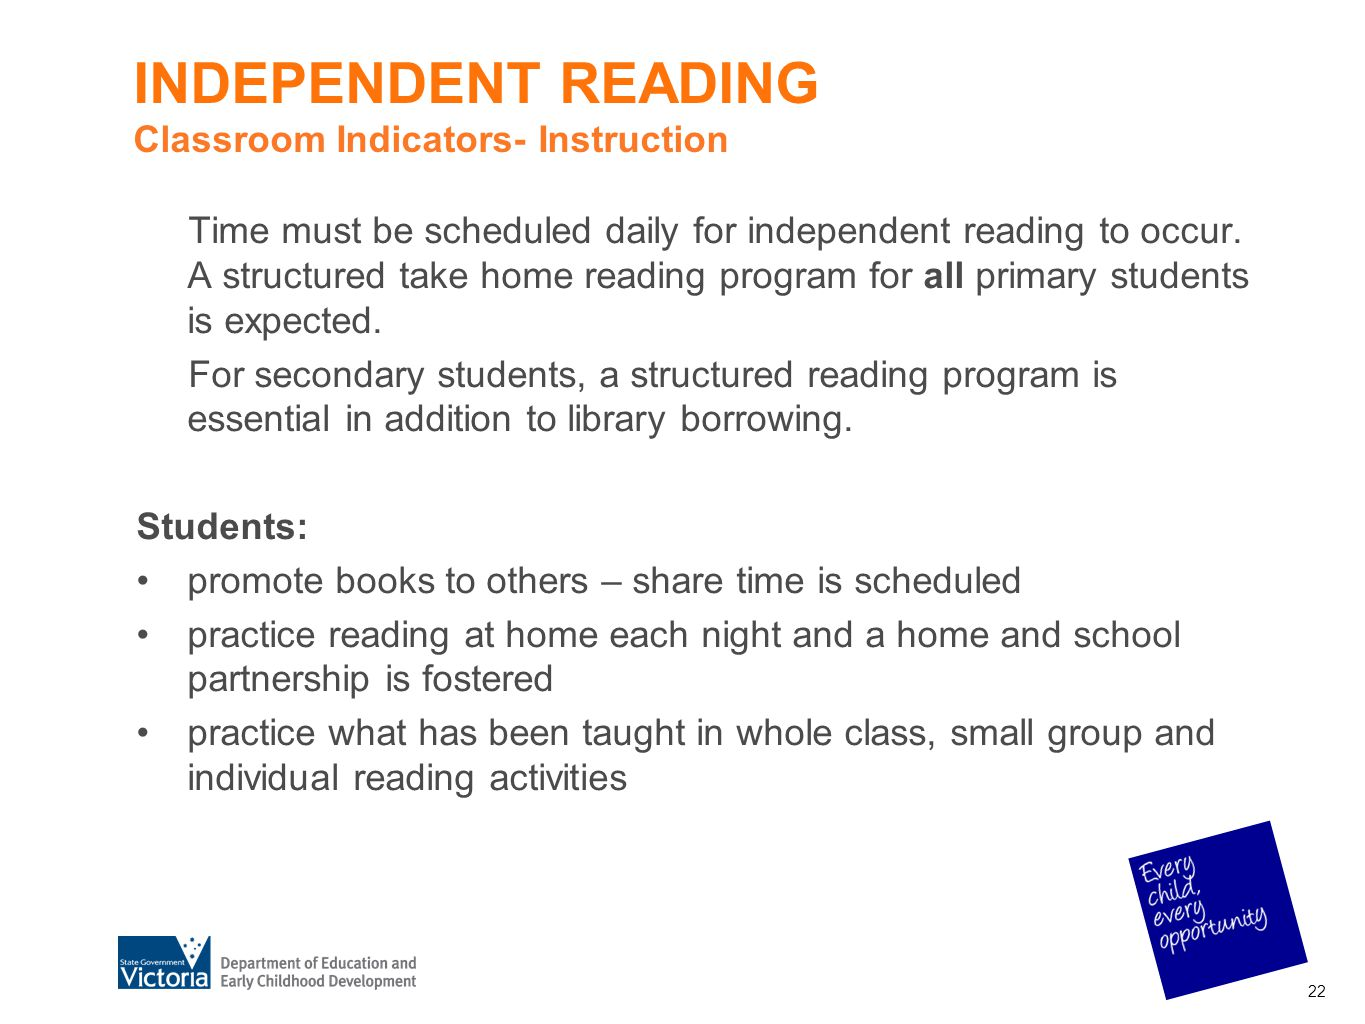 INDEPENDENT READING Classroom Indicators- Instruction